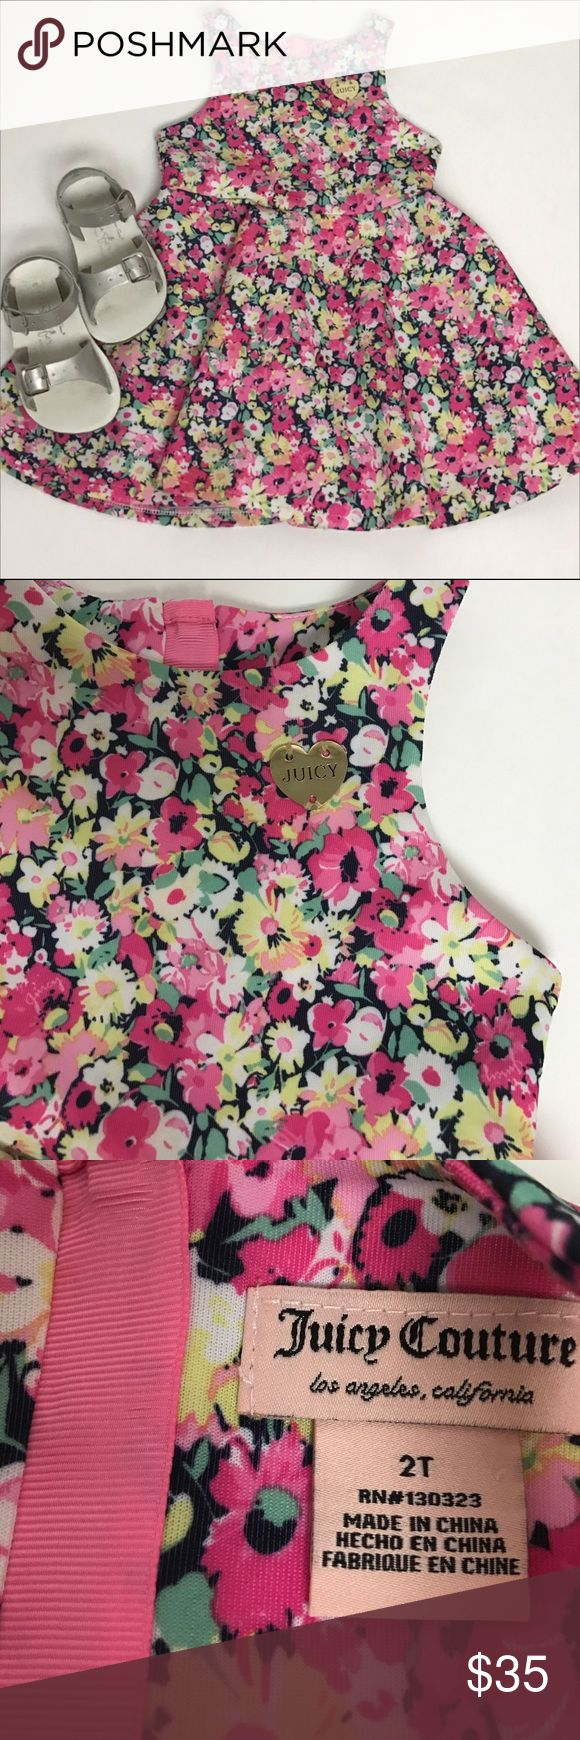 JUICY Couture Dress LIKE NEW! Juicy Couture toddler dress. Beautiful gold zipper on back. My daughter got so many complements on this dress. Juicy Couture Dresses